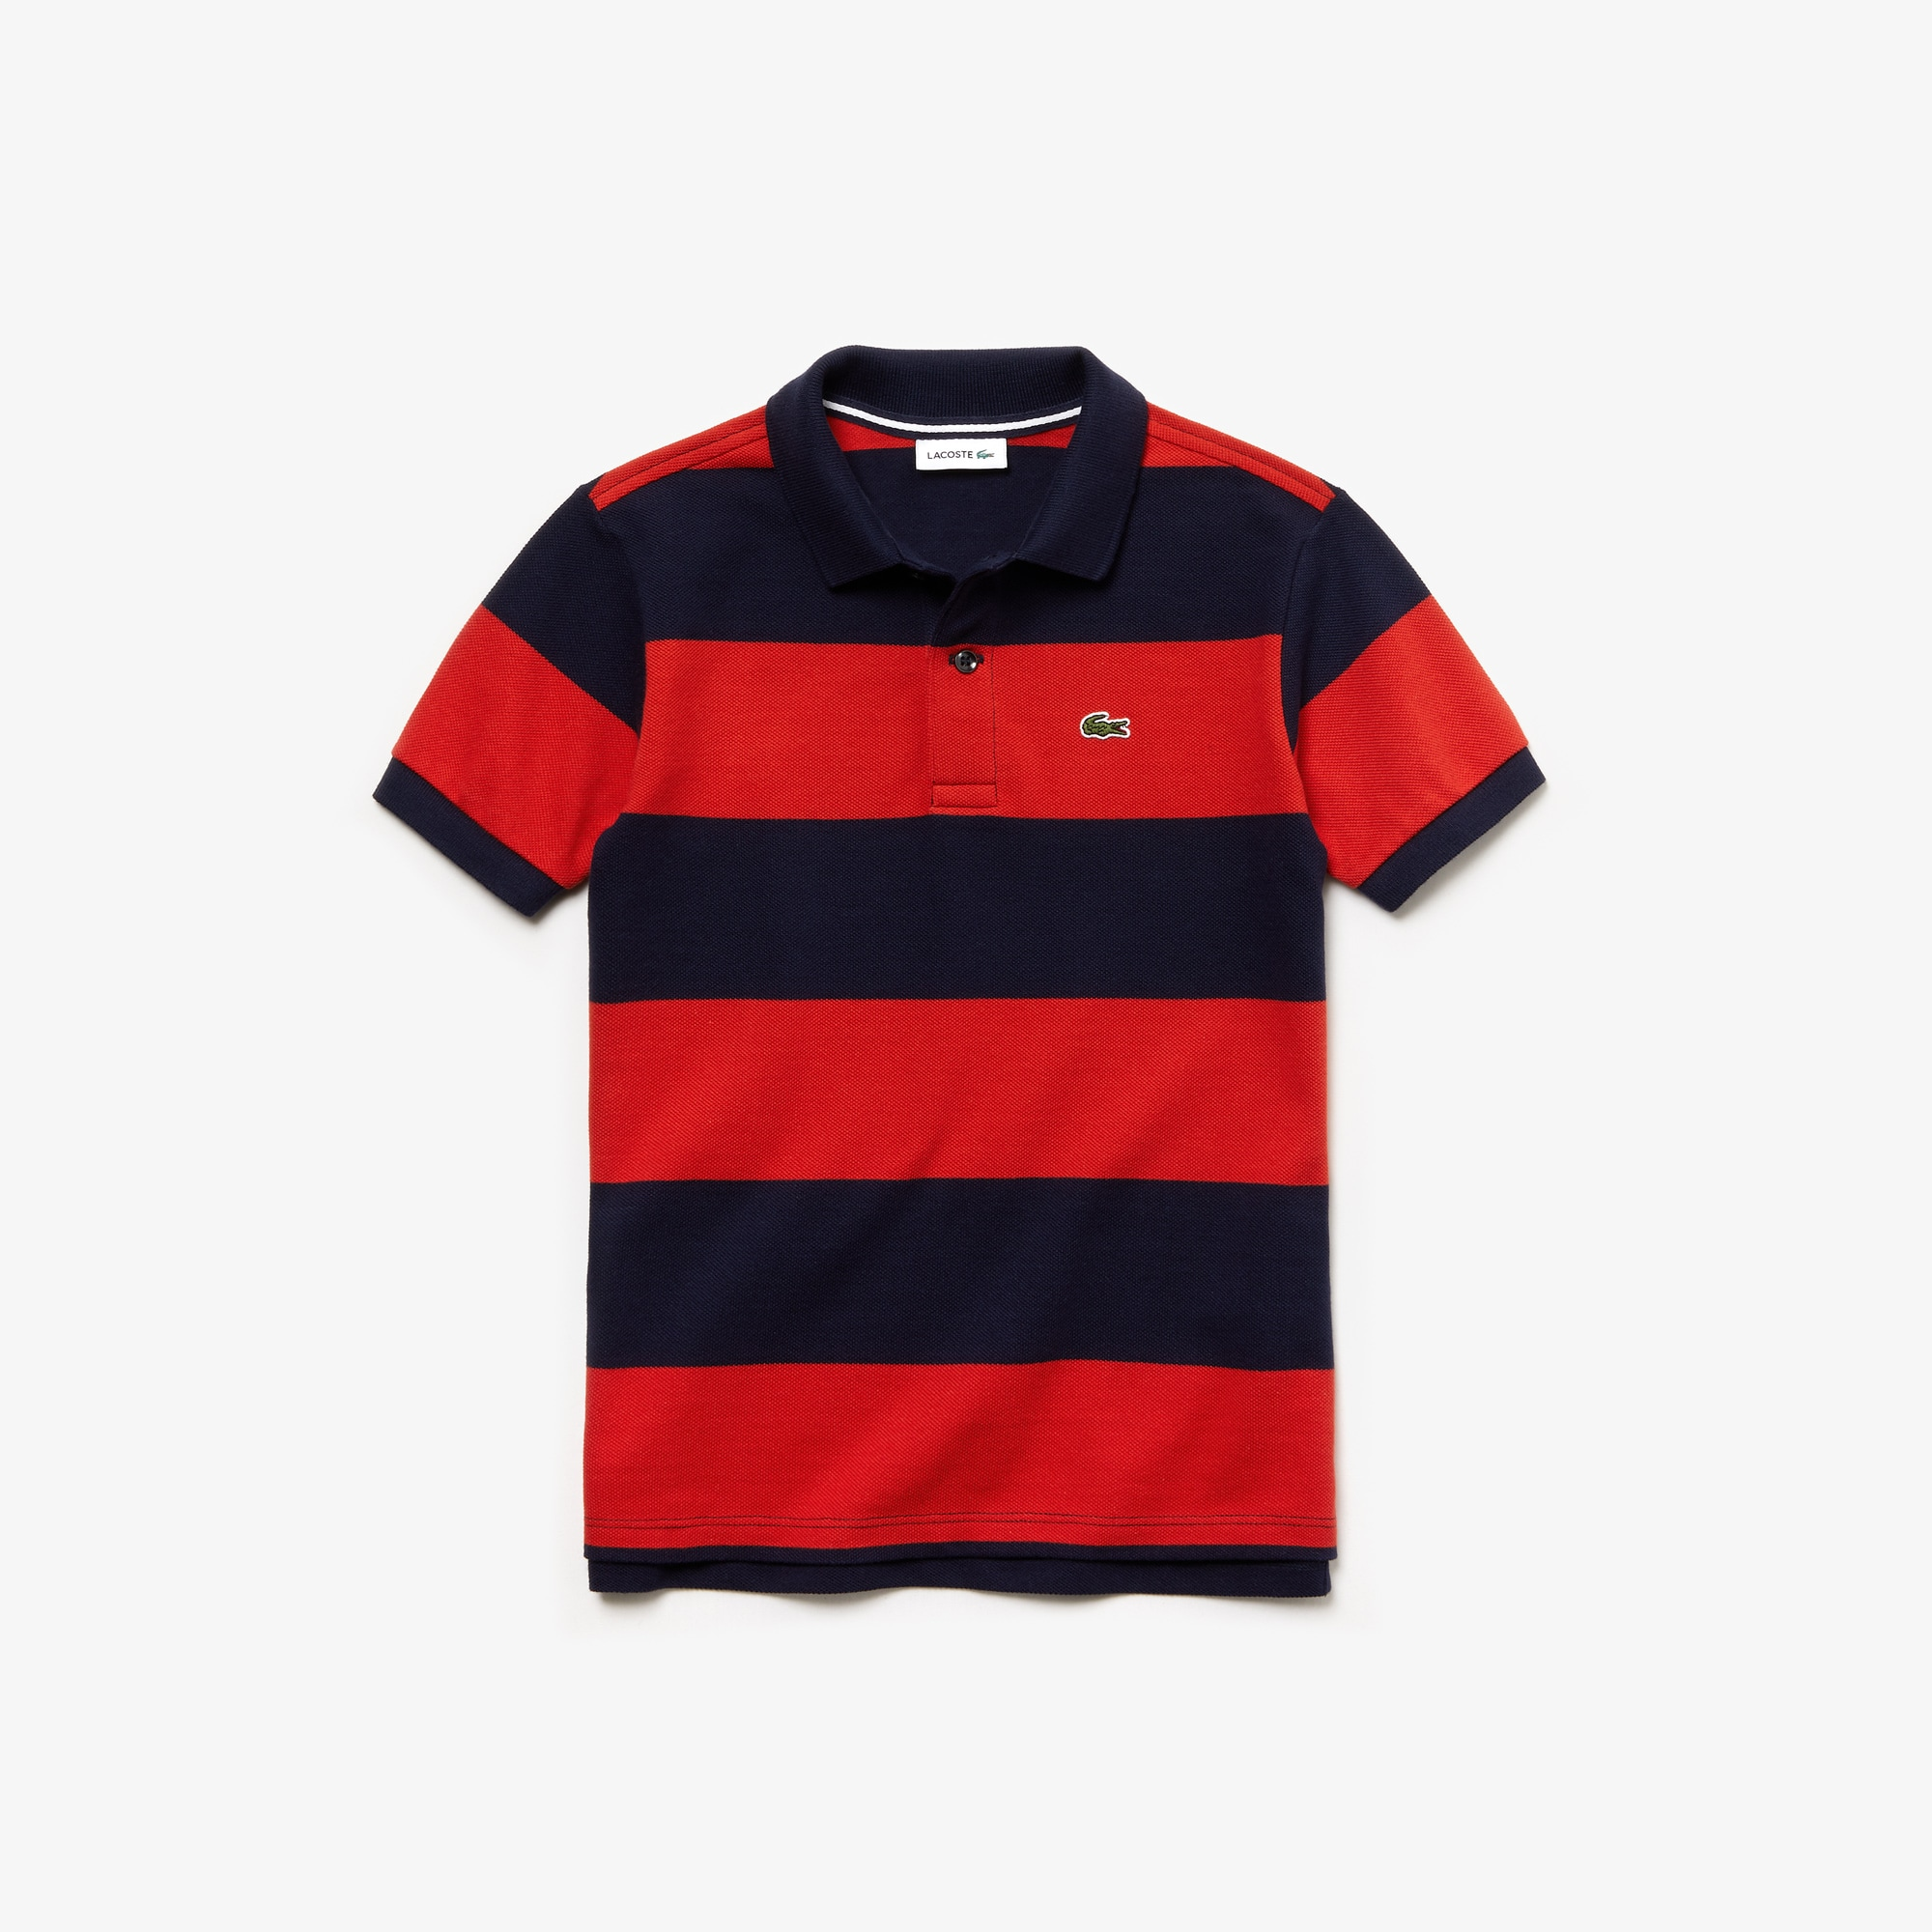 Collection Collection RayuresEnfant Lacoste Collection RayuresEnfant Lacoste oeCBdx